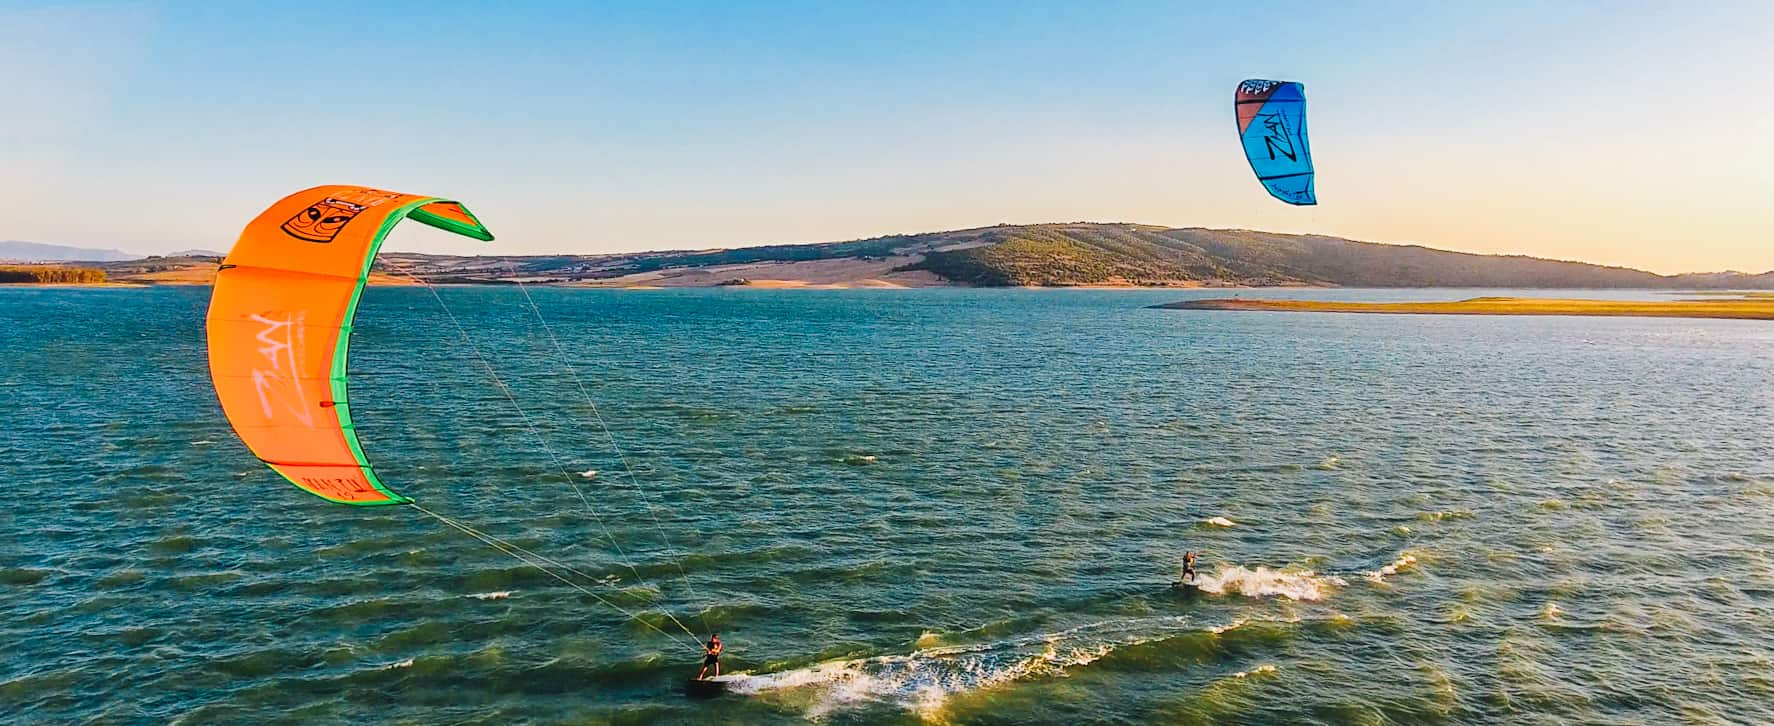 Home of Free your Mind kiteboarding, travels and events in Tarifa